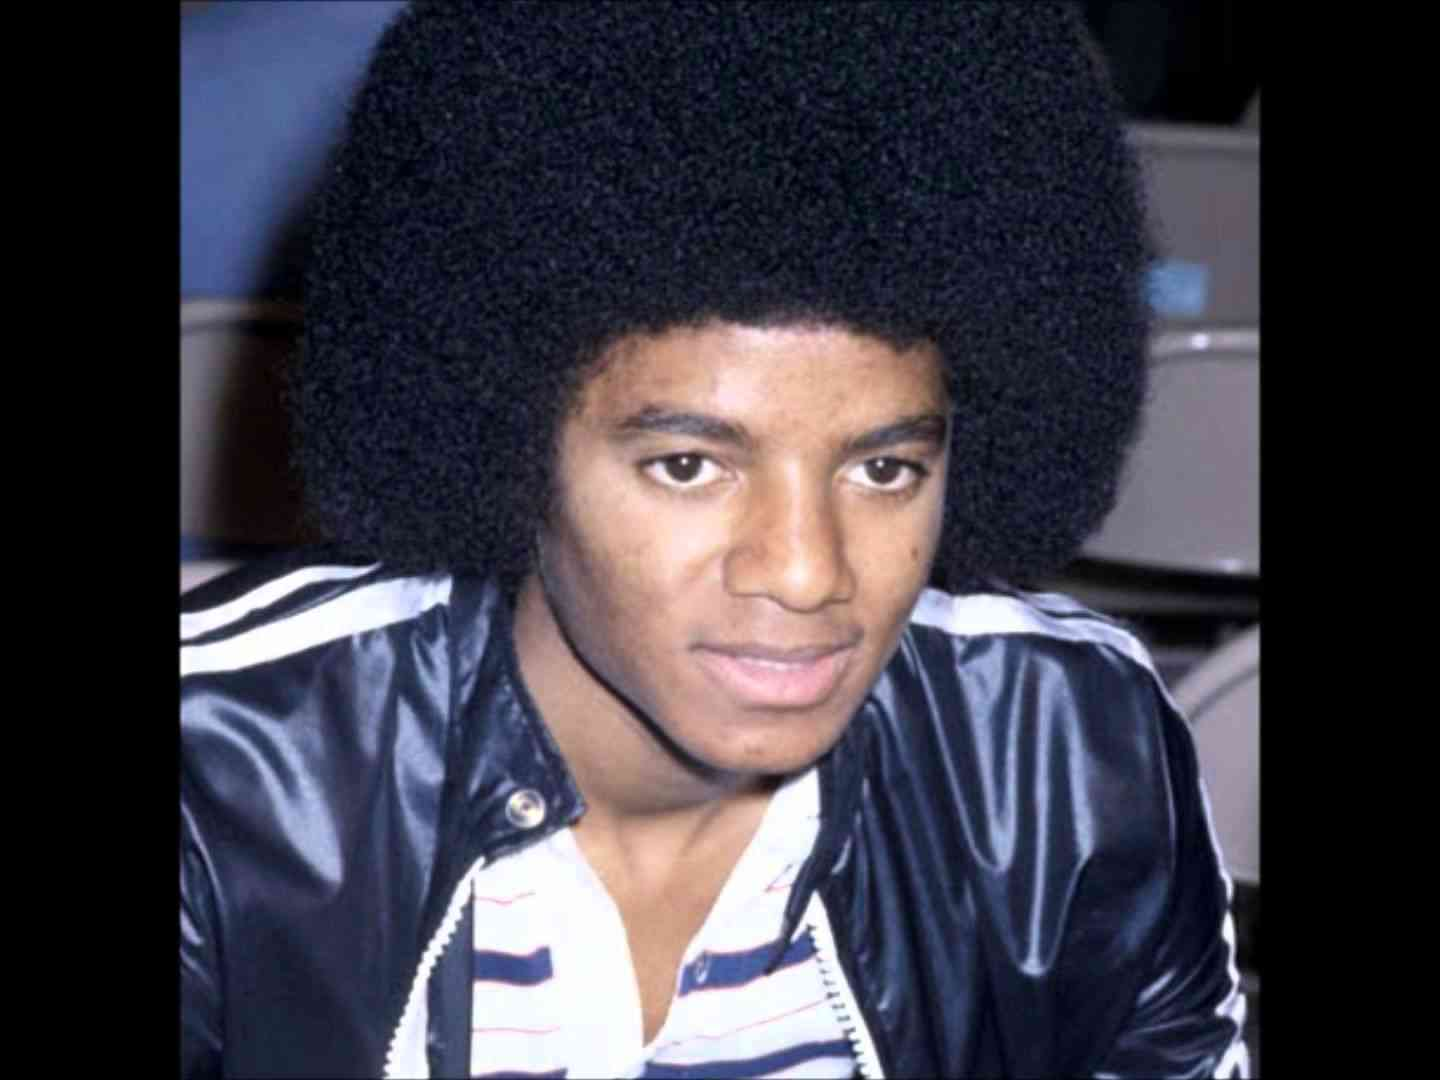 The Jacksons - Even Though You're Gone - YouTube